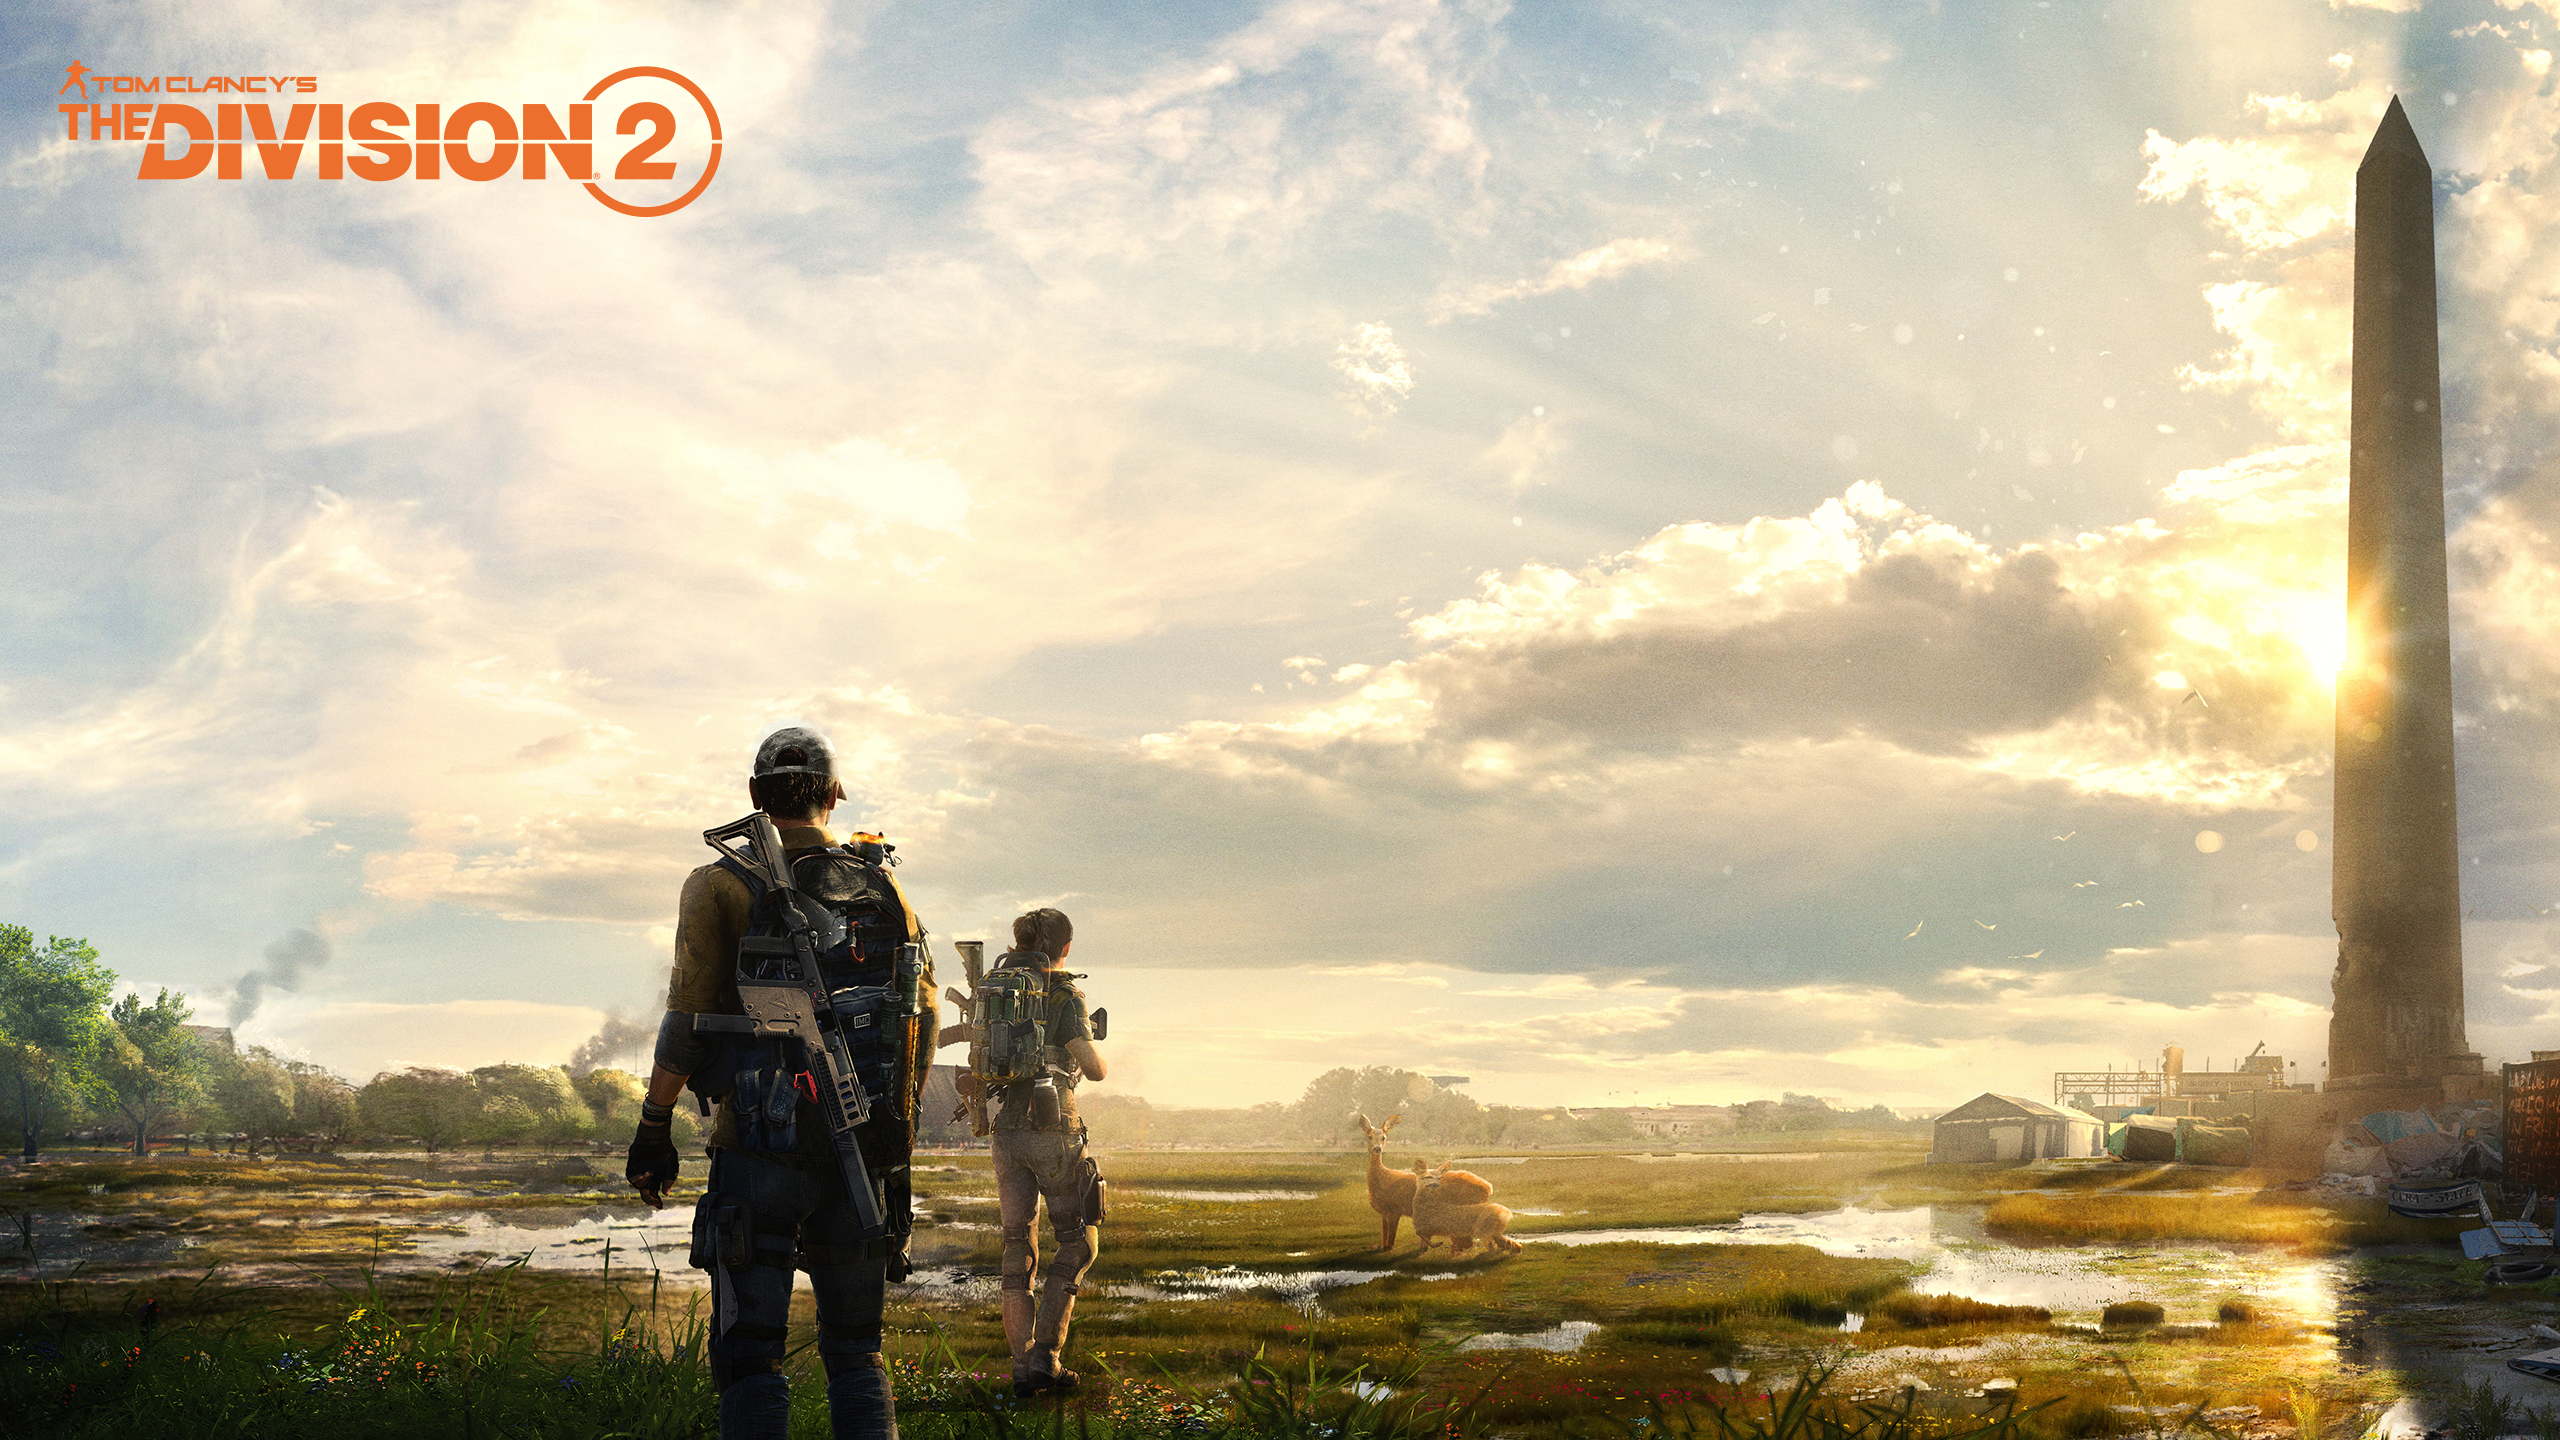 Take Back D.C. 'The Division 2' Is Now Available!